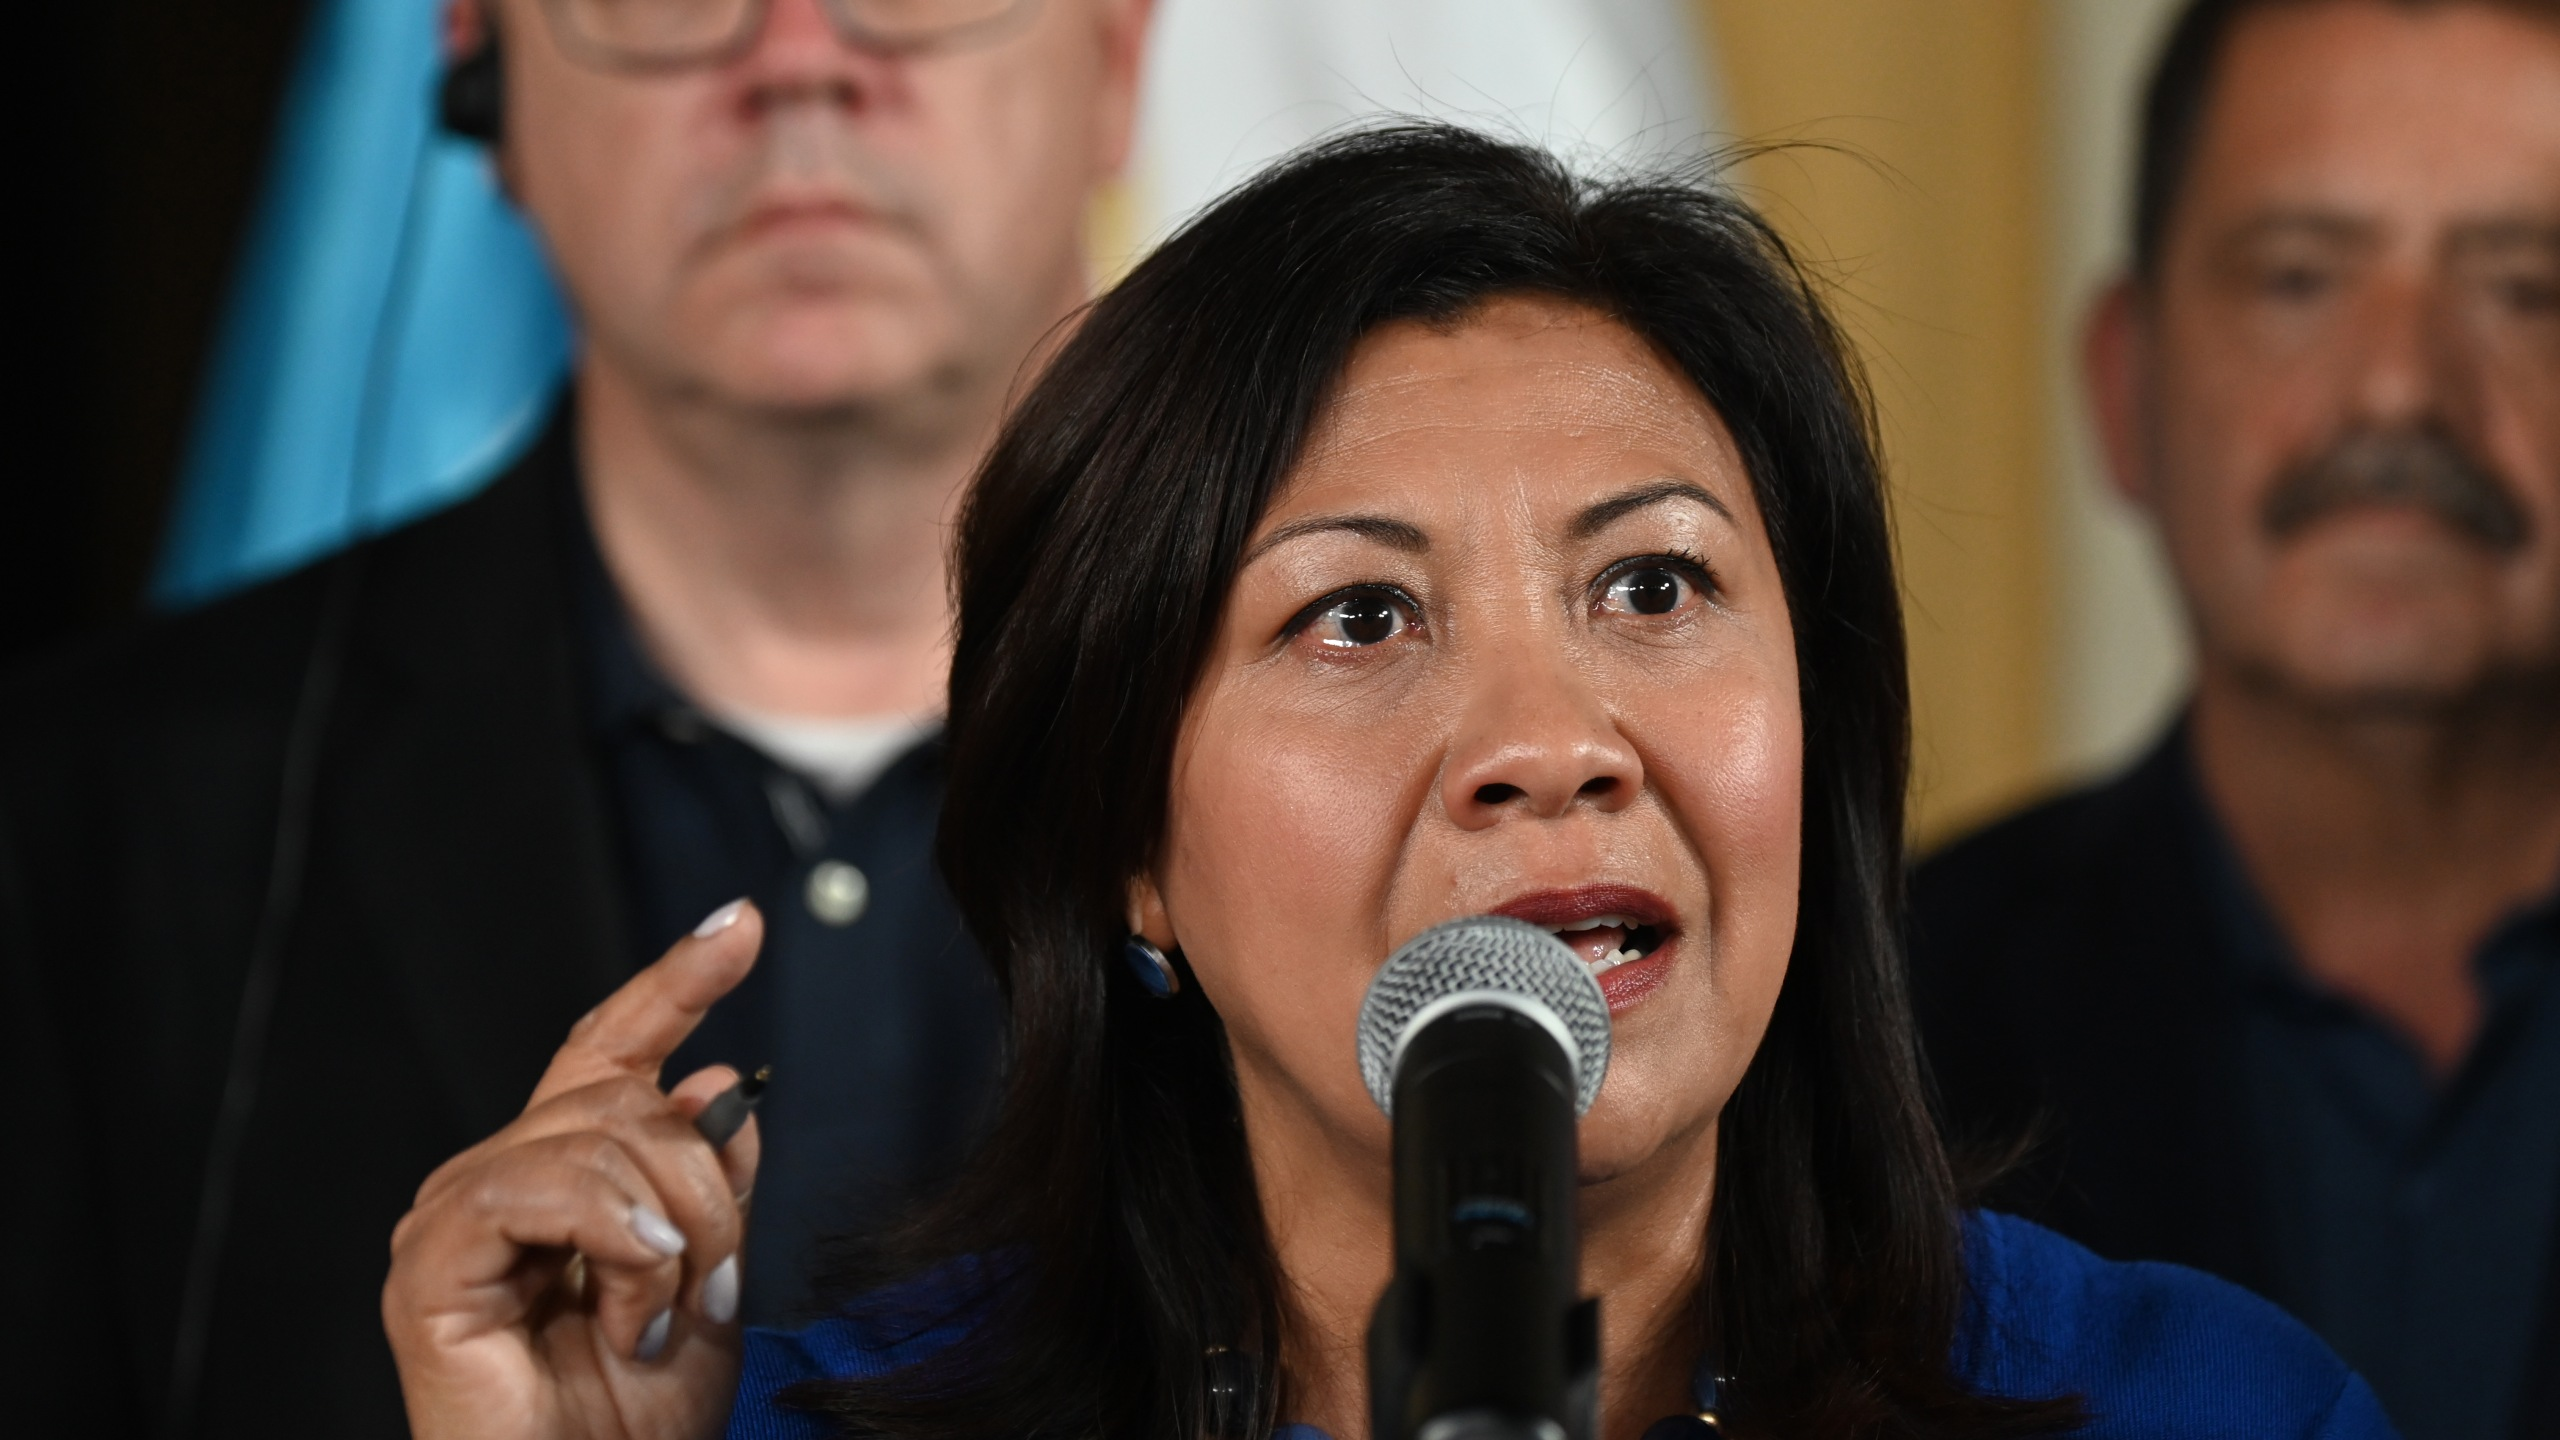 Rep. Norma Torres speaks during a press conference at the Air Force Base in Guatemala City on Aug. 8, 2019. (Credit: JOHAN ORDONEZ/AFP/Getty Images)